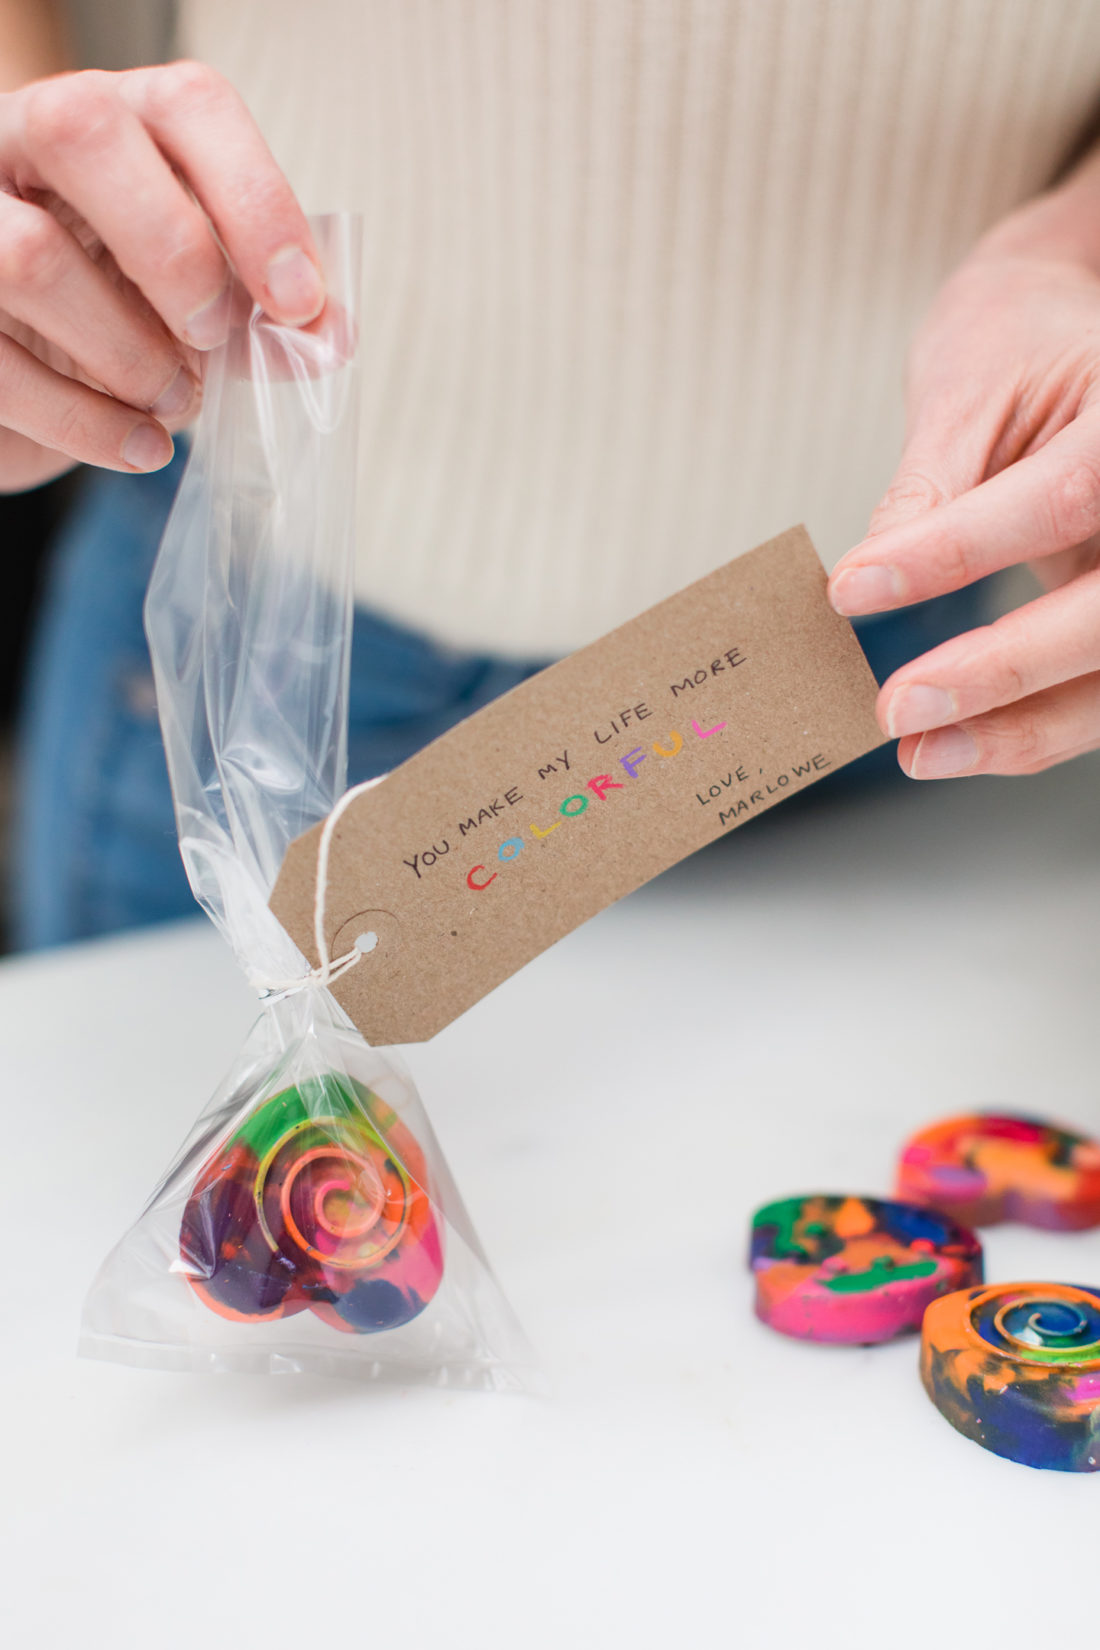 Eva Amurri Martino wraps up home made multicolored heart shaped crayons as Valentine's Day Favors for her daughter's class